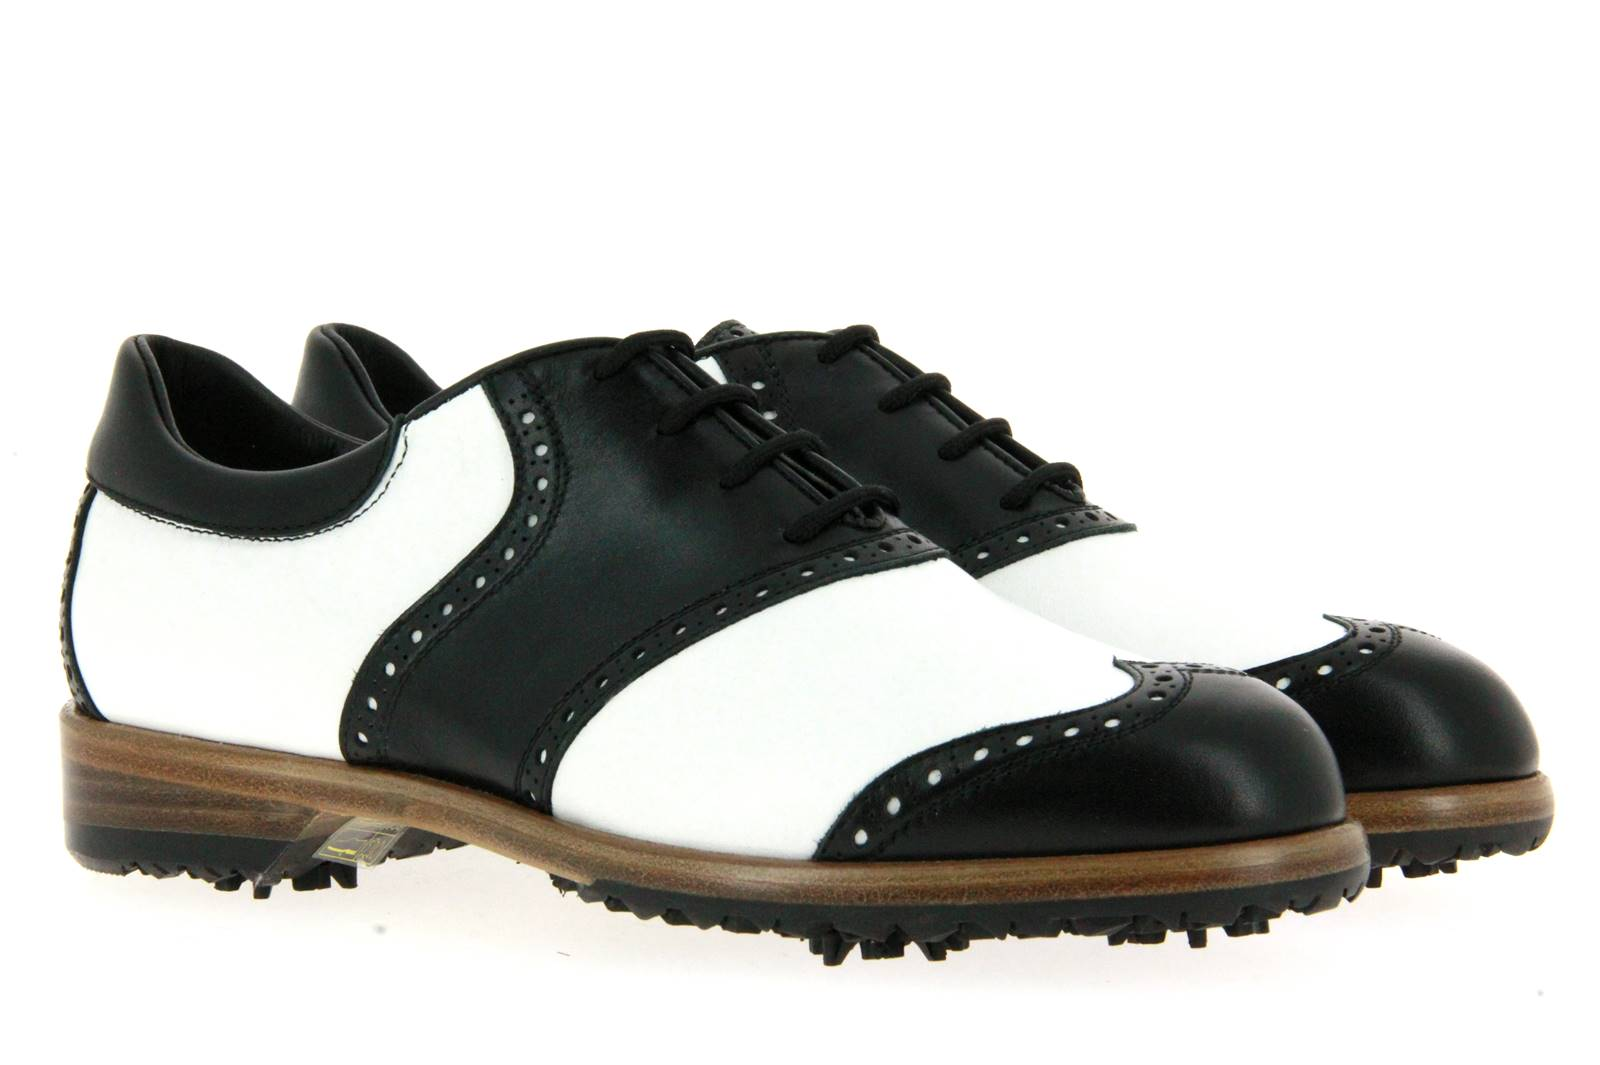 Tee Golf Shoes women's - golf shoe SUSY NERO BIANCO